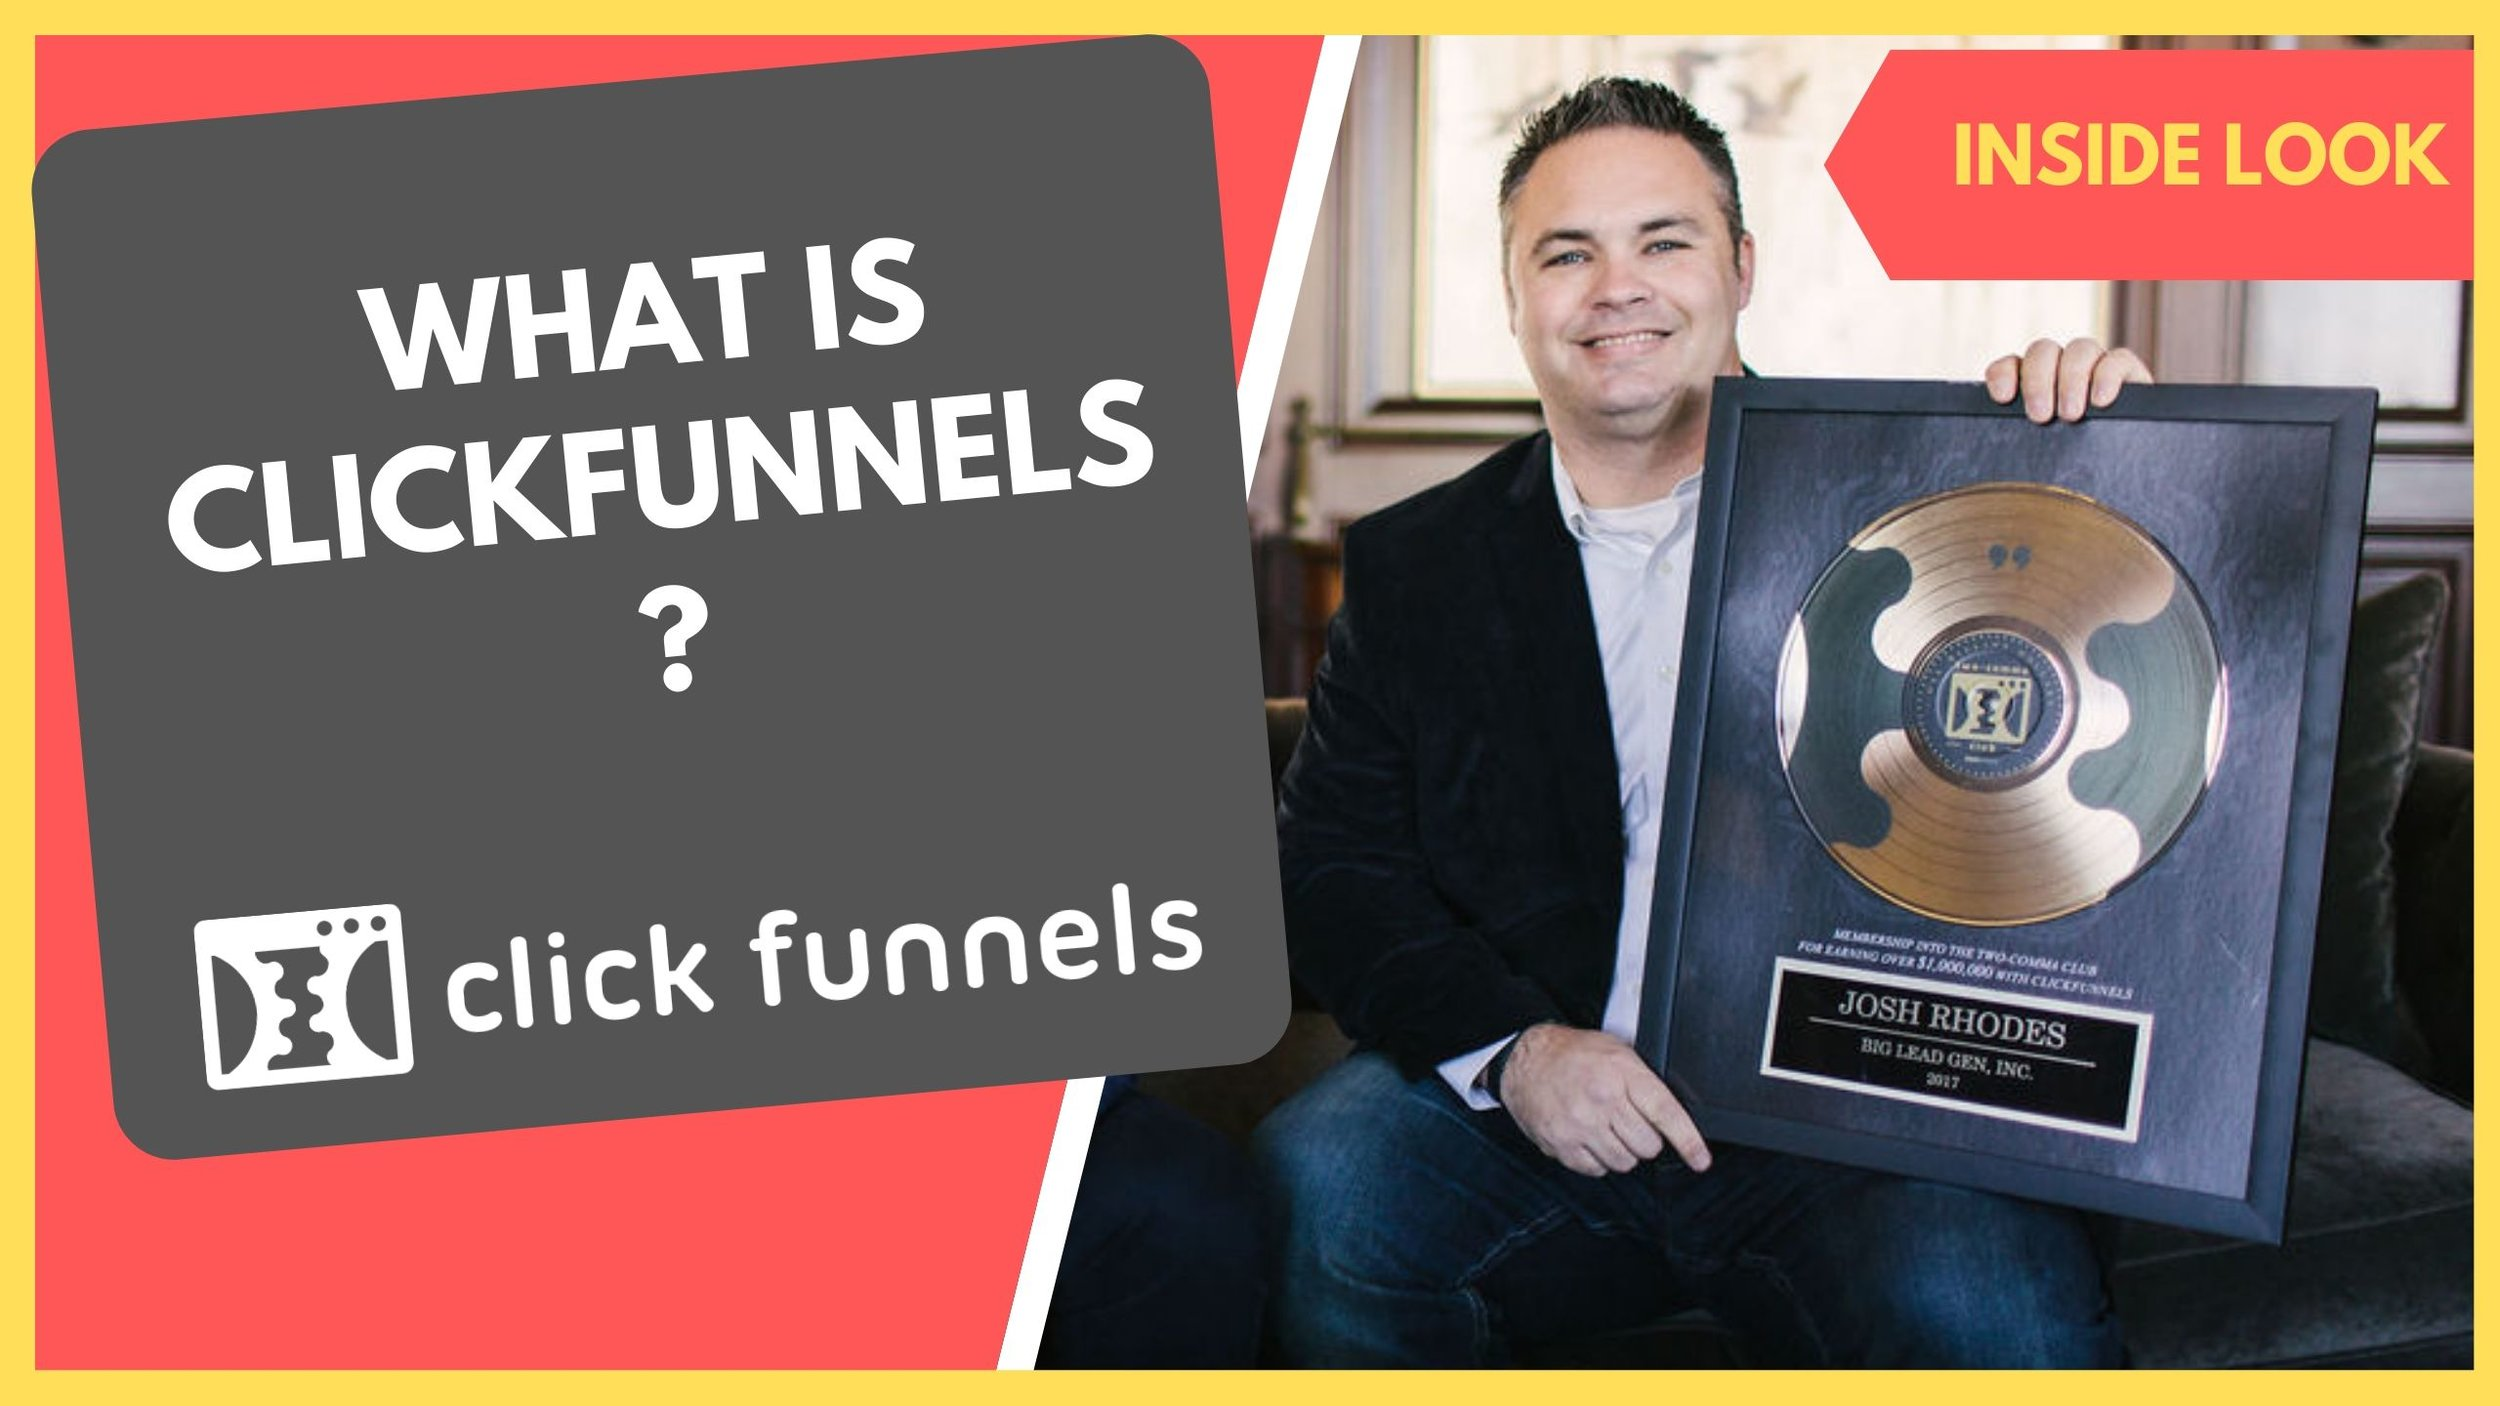 How Does Clickfunnels Work With An Existing Website